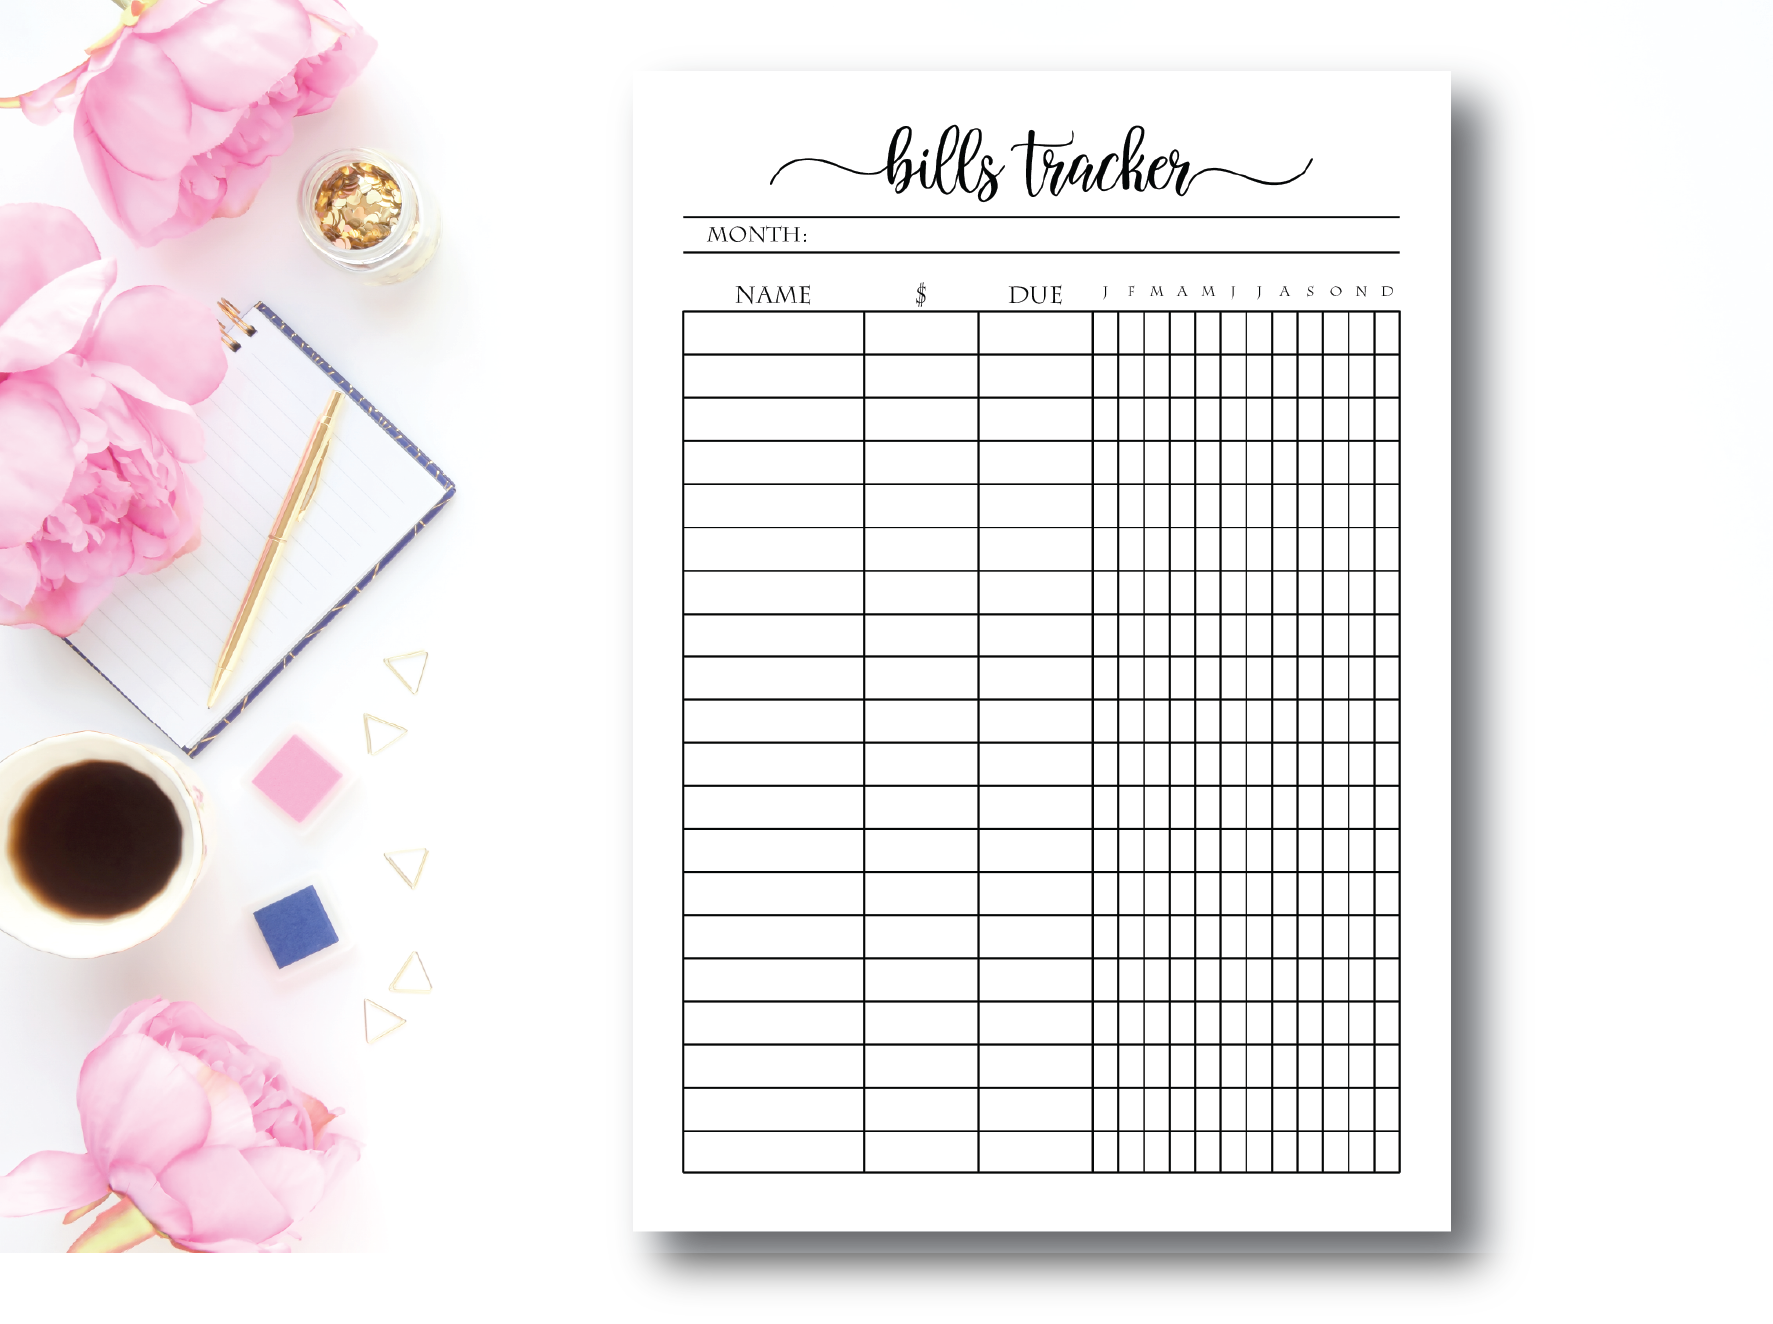 It is an image of Free Printable Bill Tracker with month by month